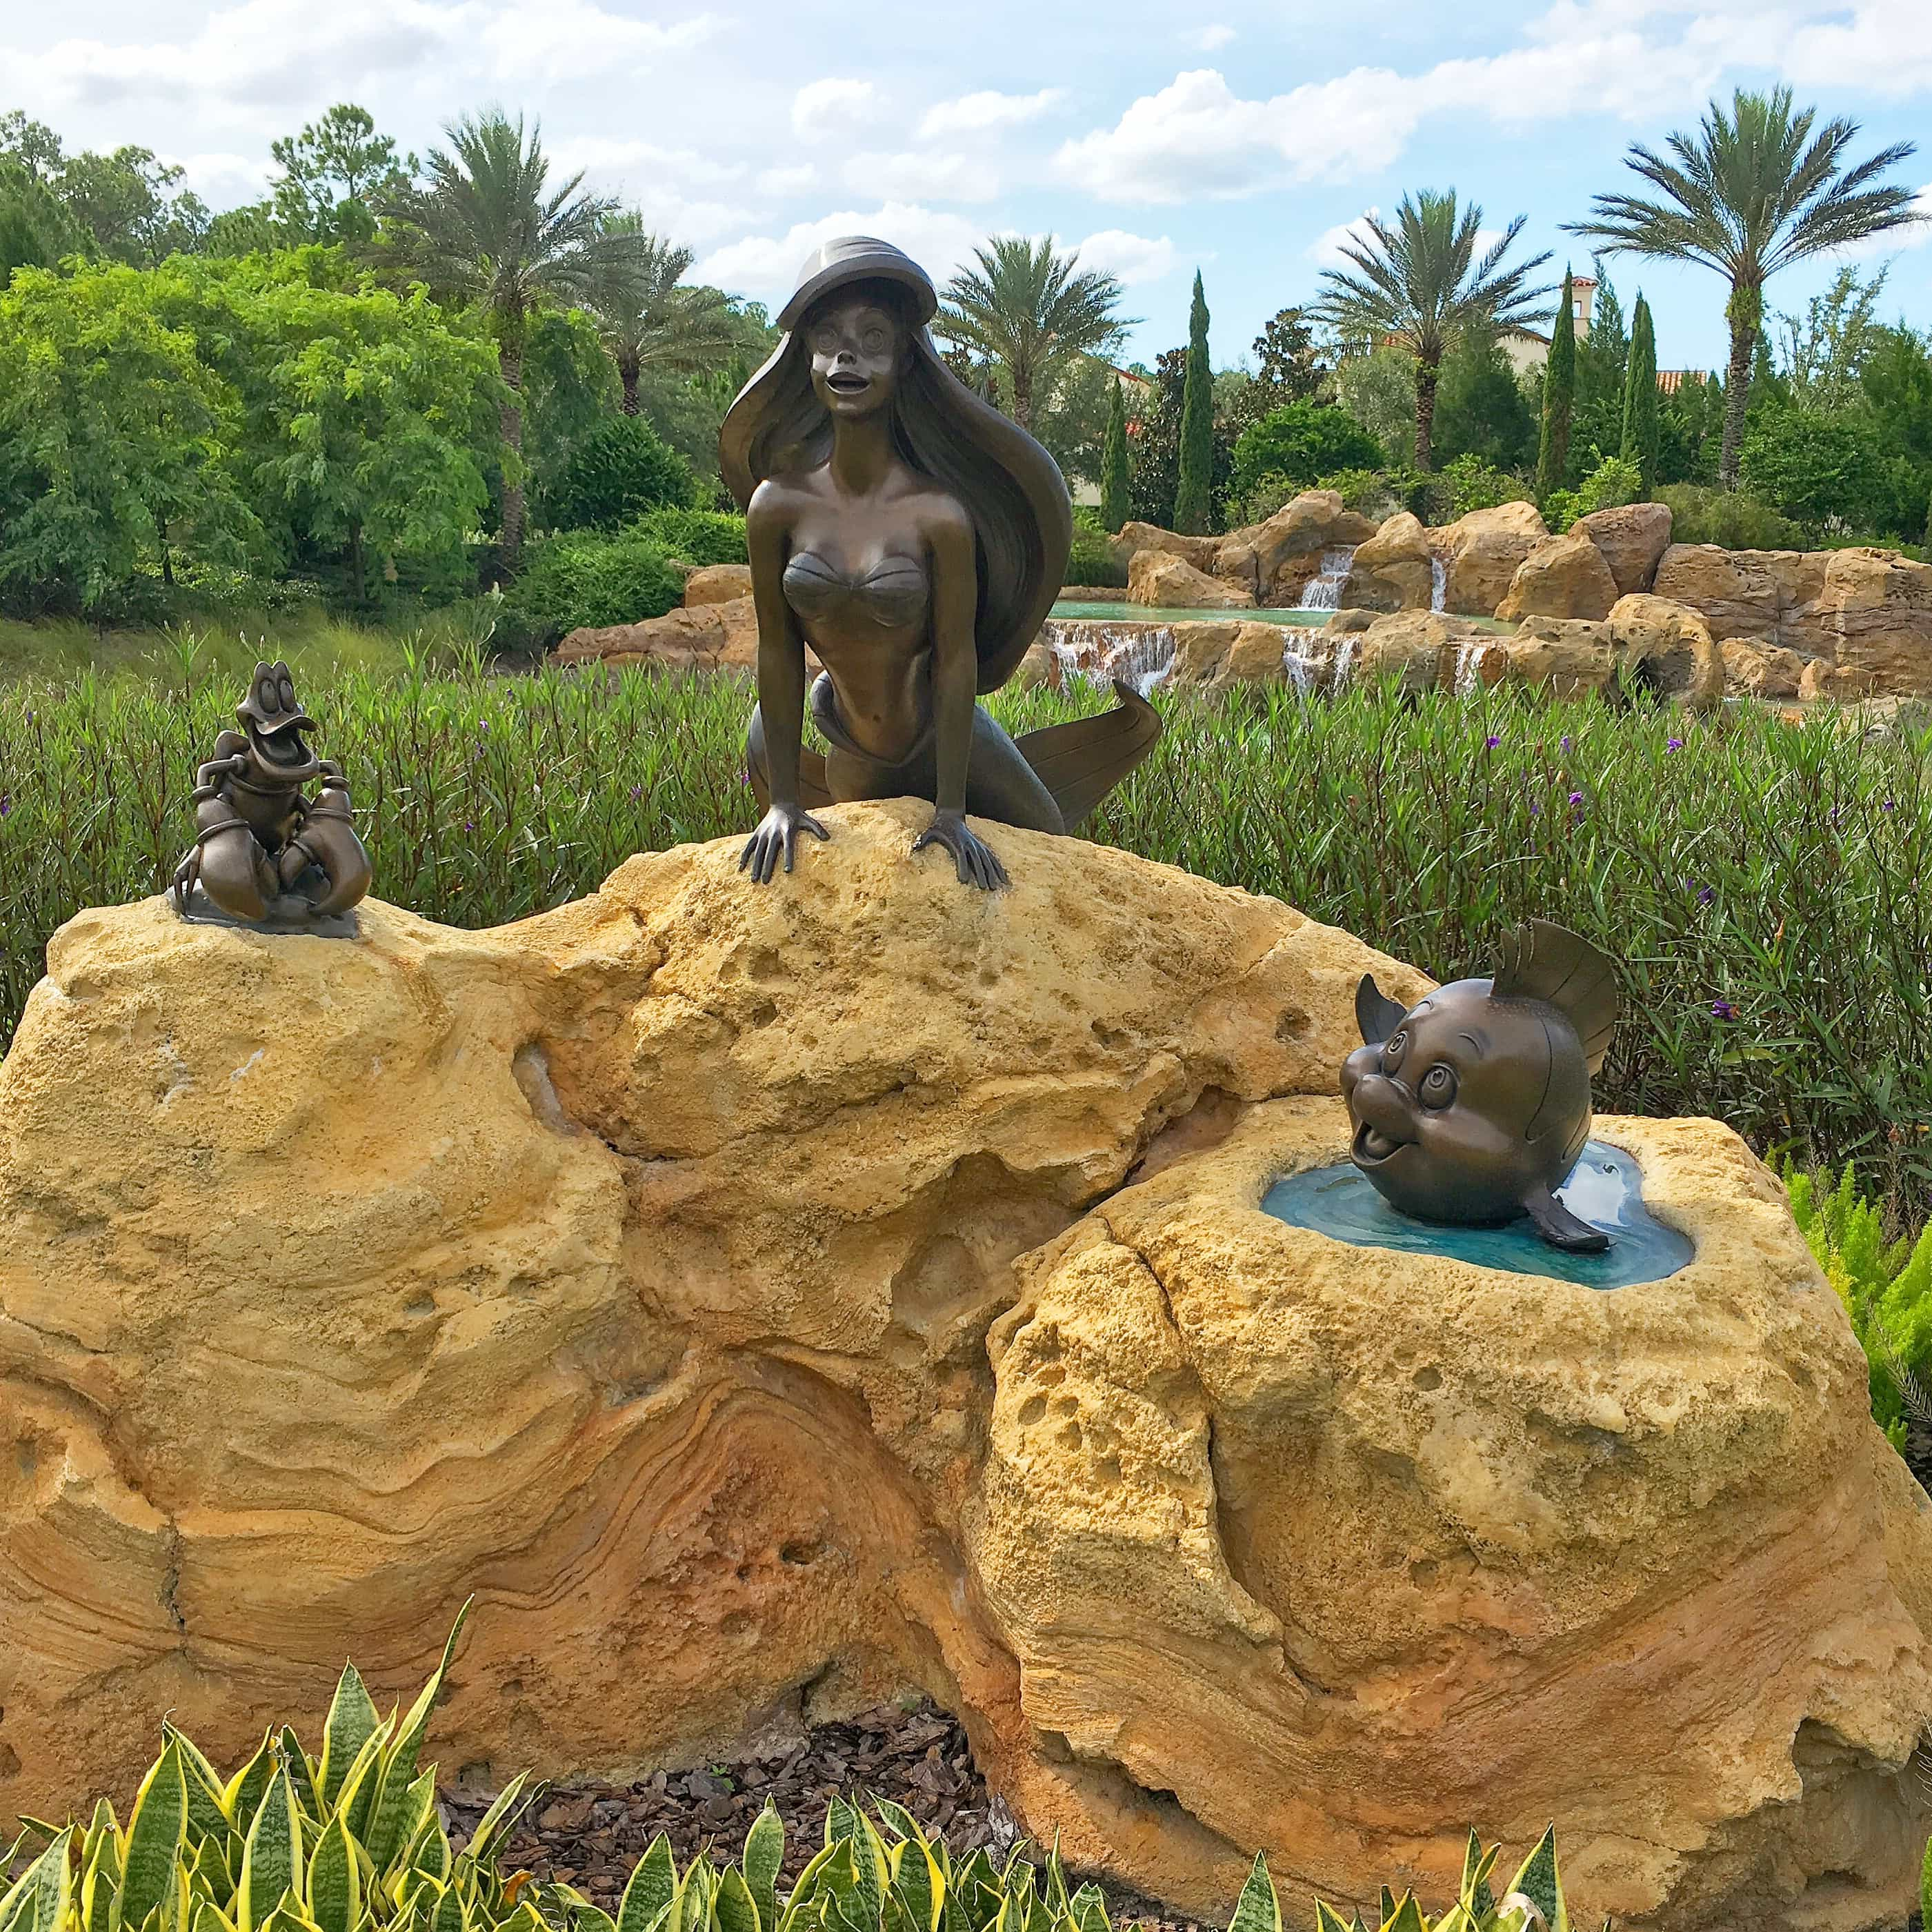 Five Fun Facts About Walt Disney World You Should Know - Kim and Carrie